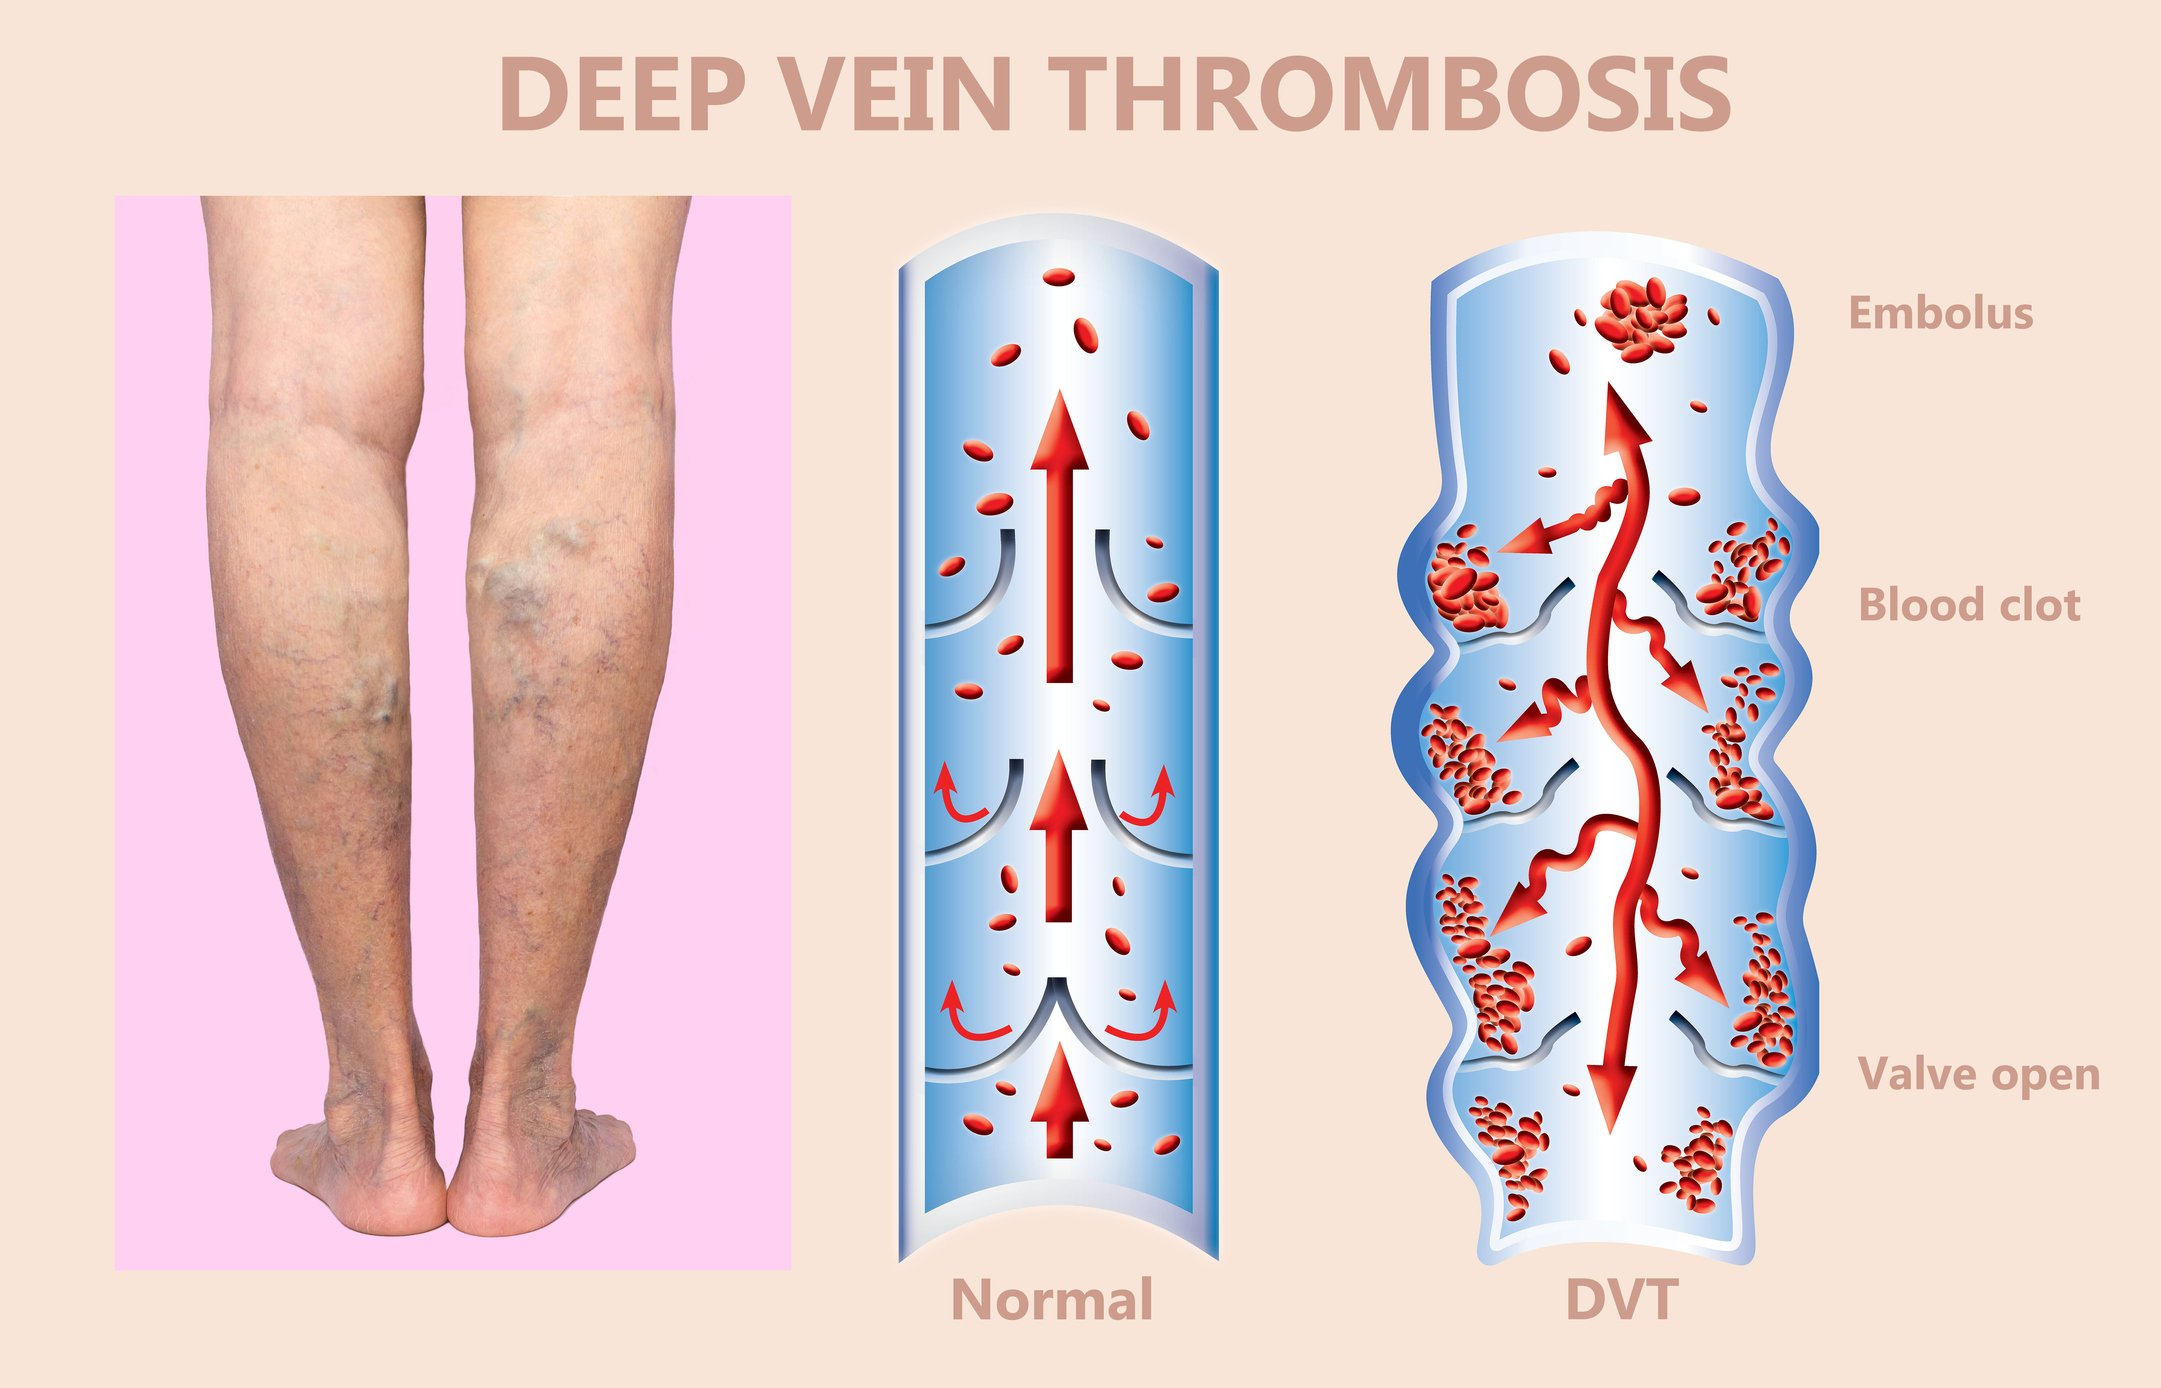 March is Deep Vein Thrombosis Awareness Month - FAQs on DVT